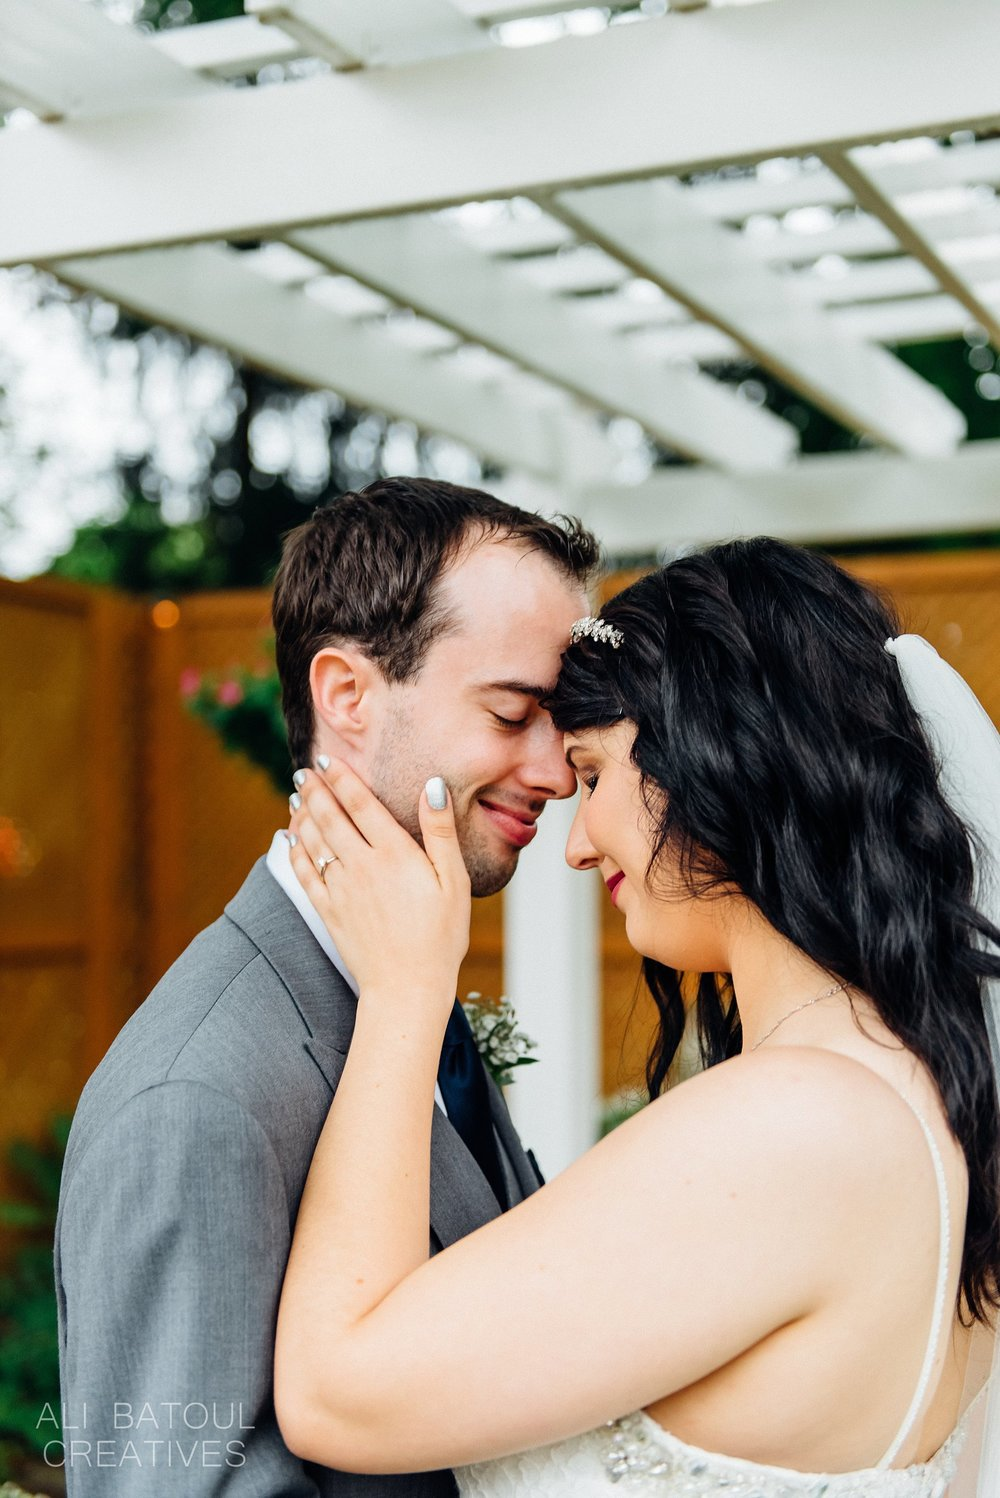 Jocelyn + Steve At The Schoolhouse Wedding - Ali and Batoul Fine Art Wedding Photography_0049.jpg